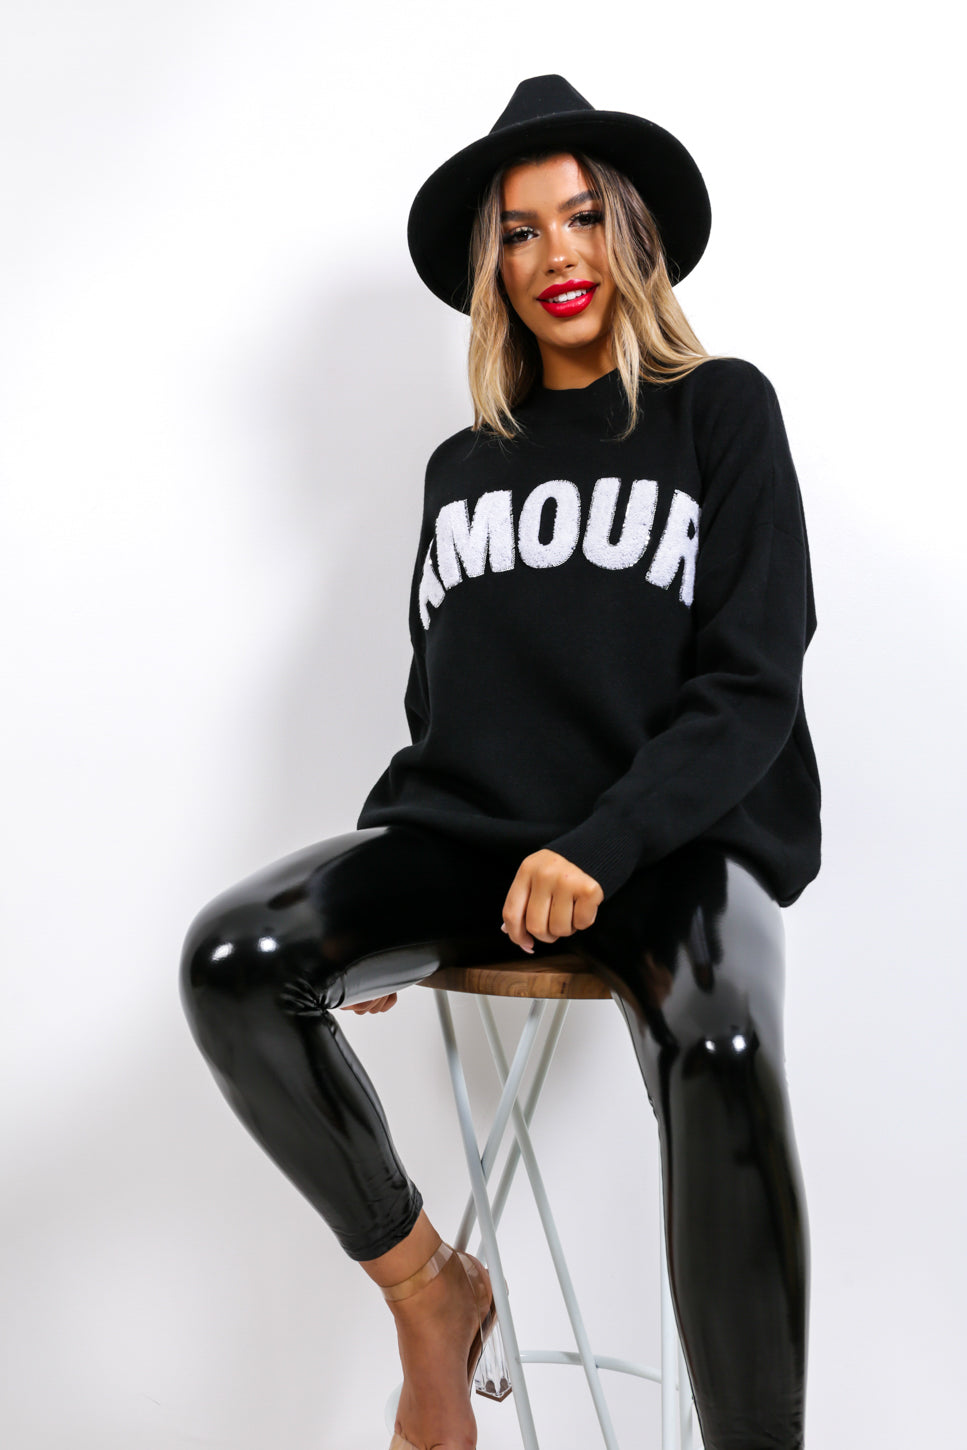 https://cdn.shopify.com/s/files/1/0062/6661/7925/files/product-video-je_t_aime-jumper-in-black.mp4?5932